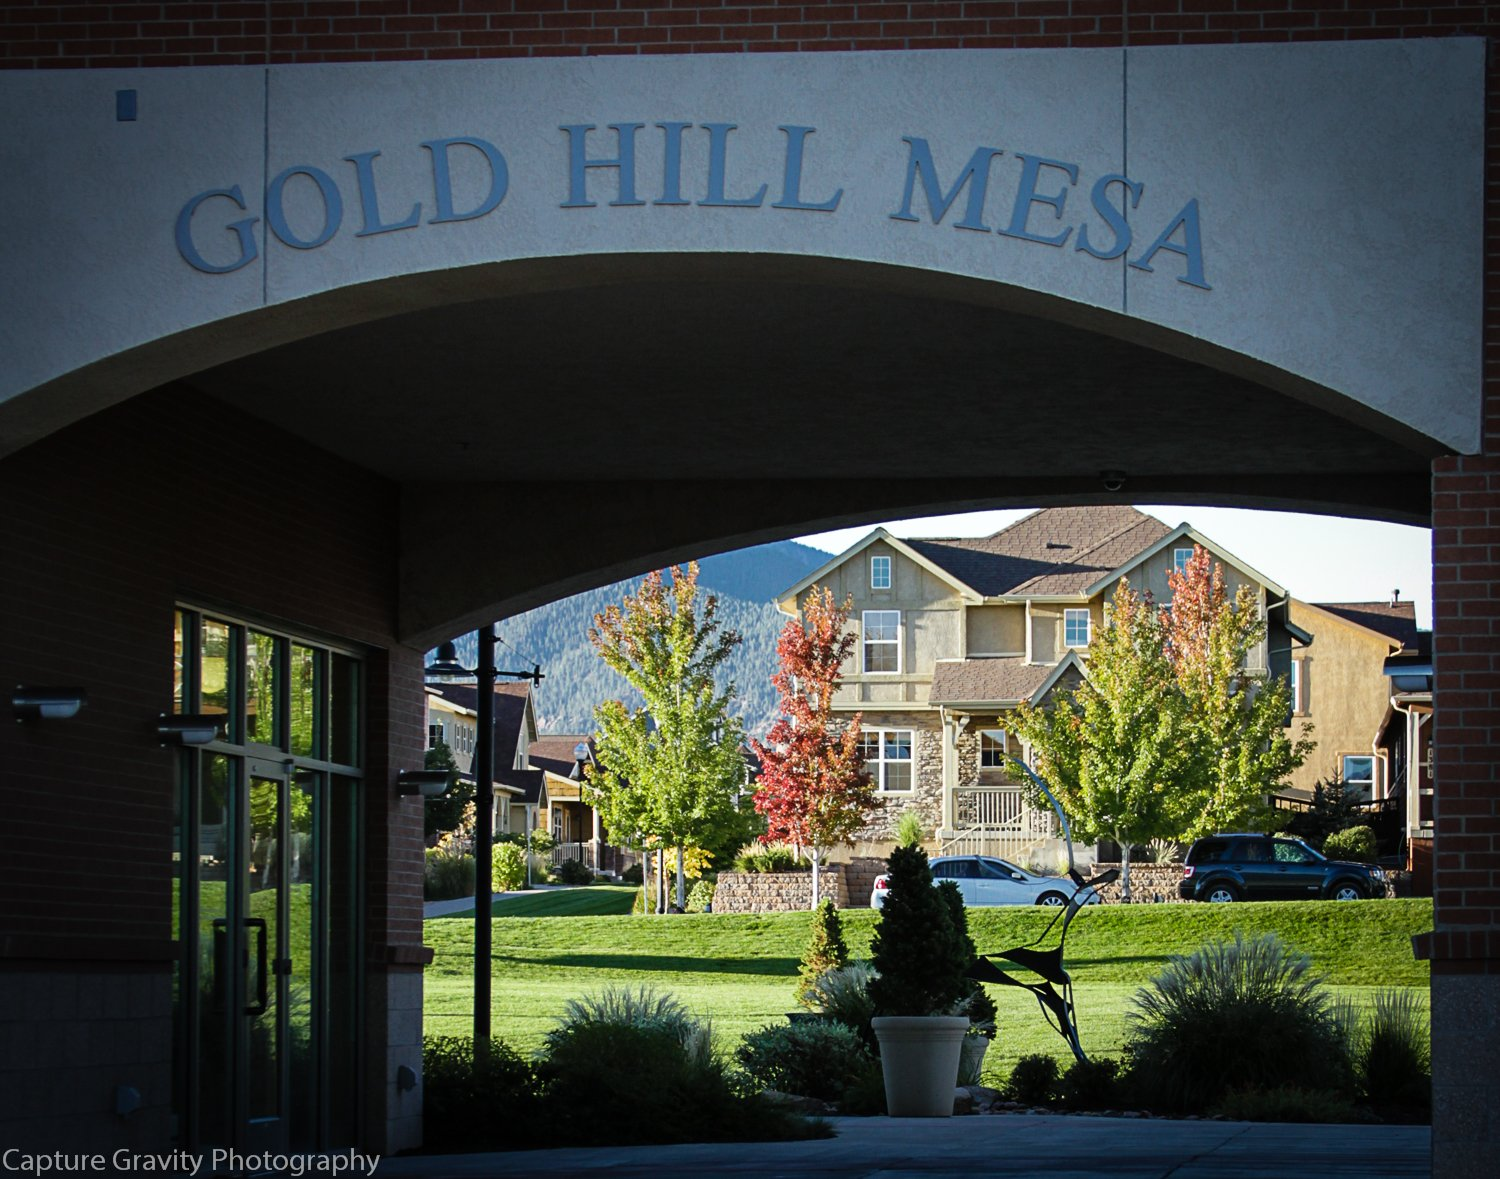 PIcture of Arch on Gold Hill Mesa community center